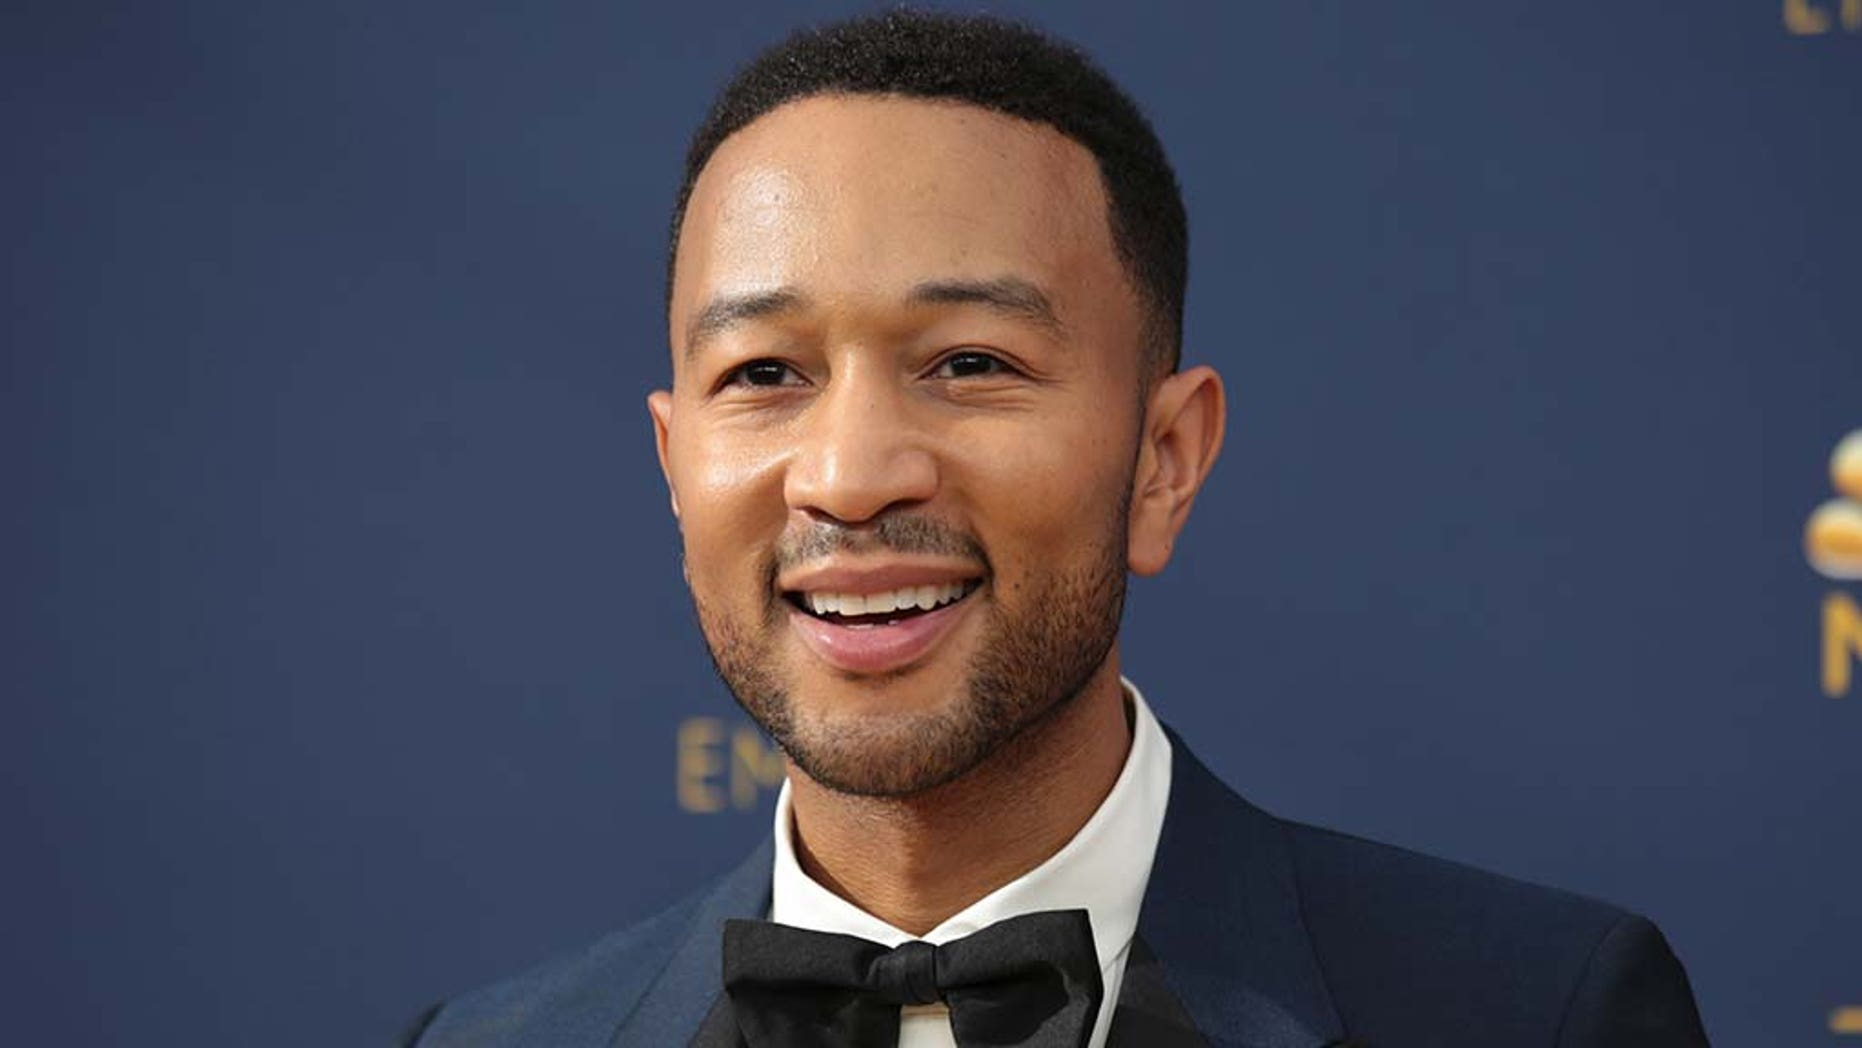 John Legend voices Google Assistant, won't use new cameo